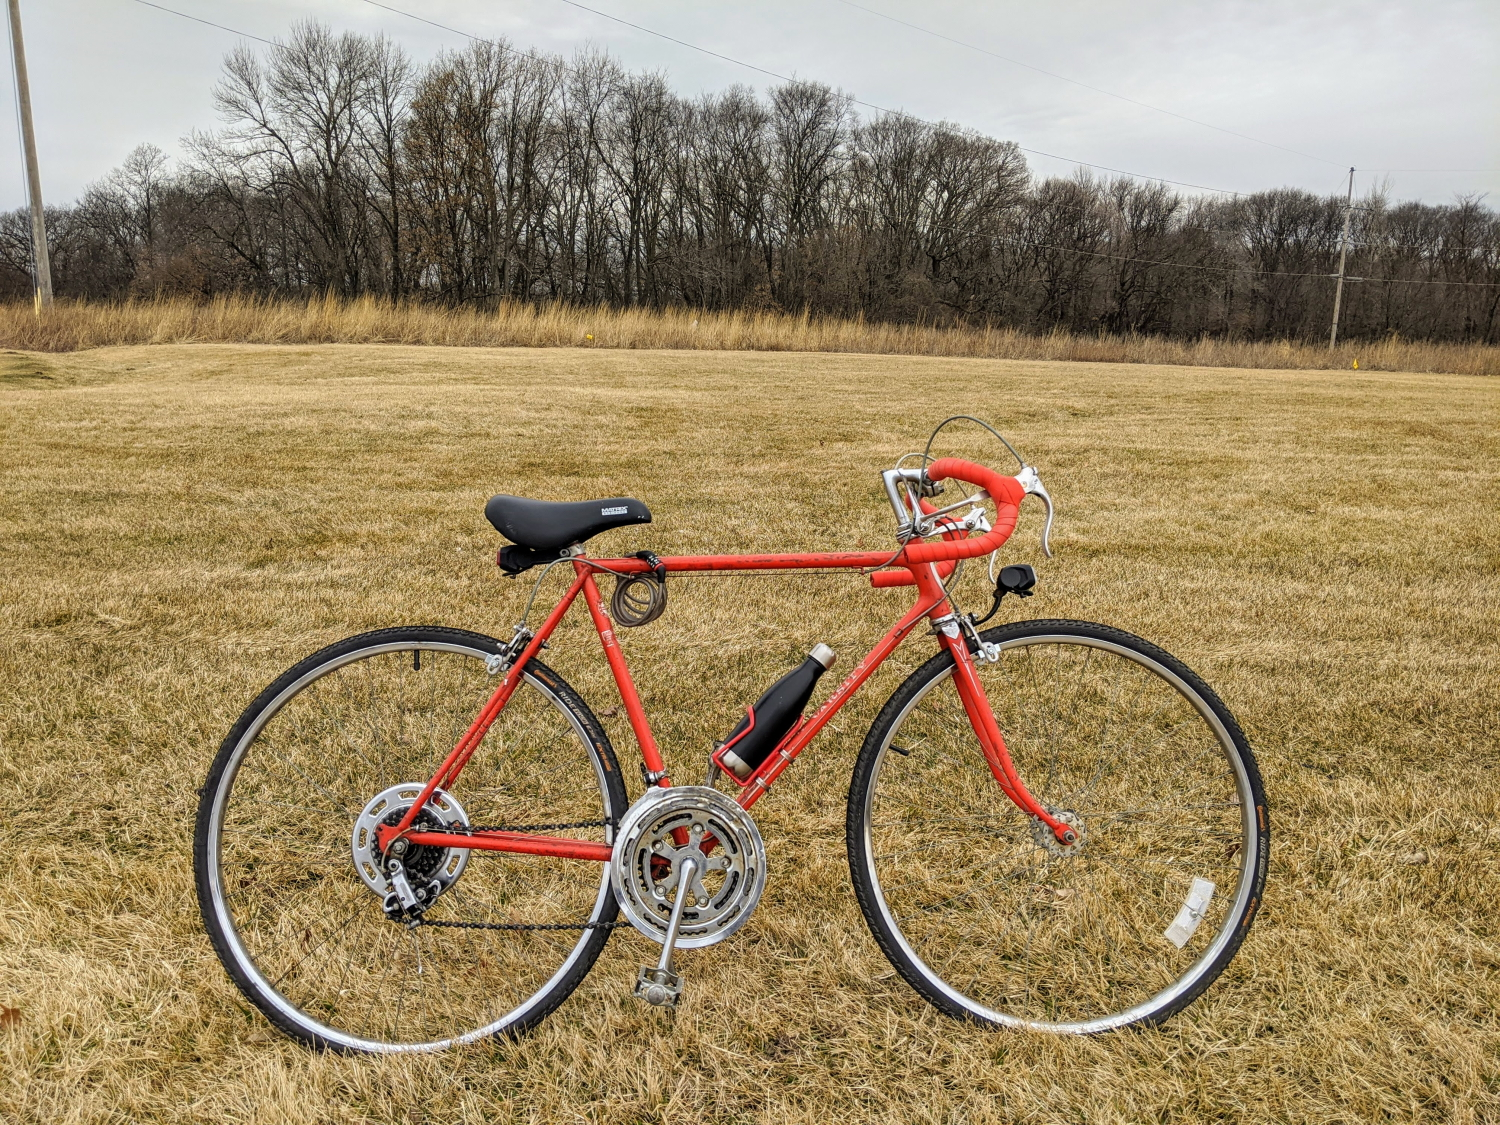 1973 Schwinn Bicycle Update